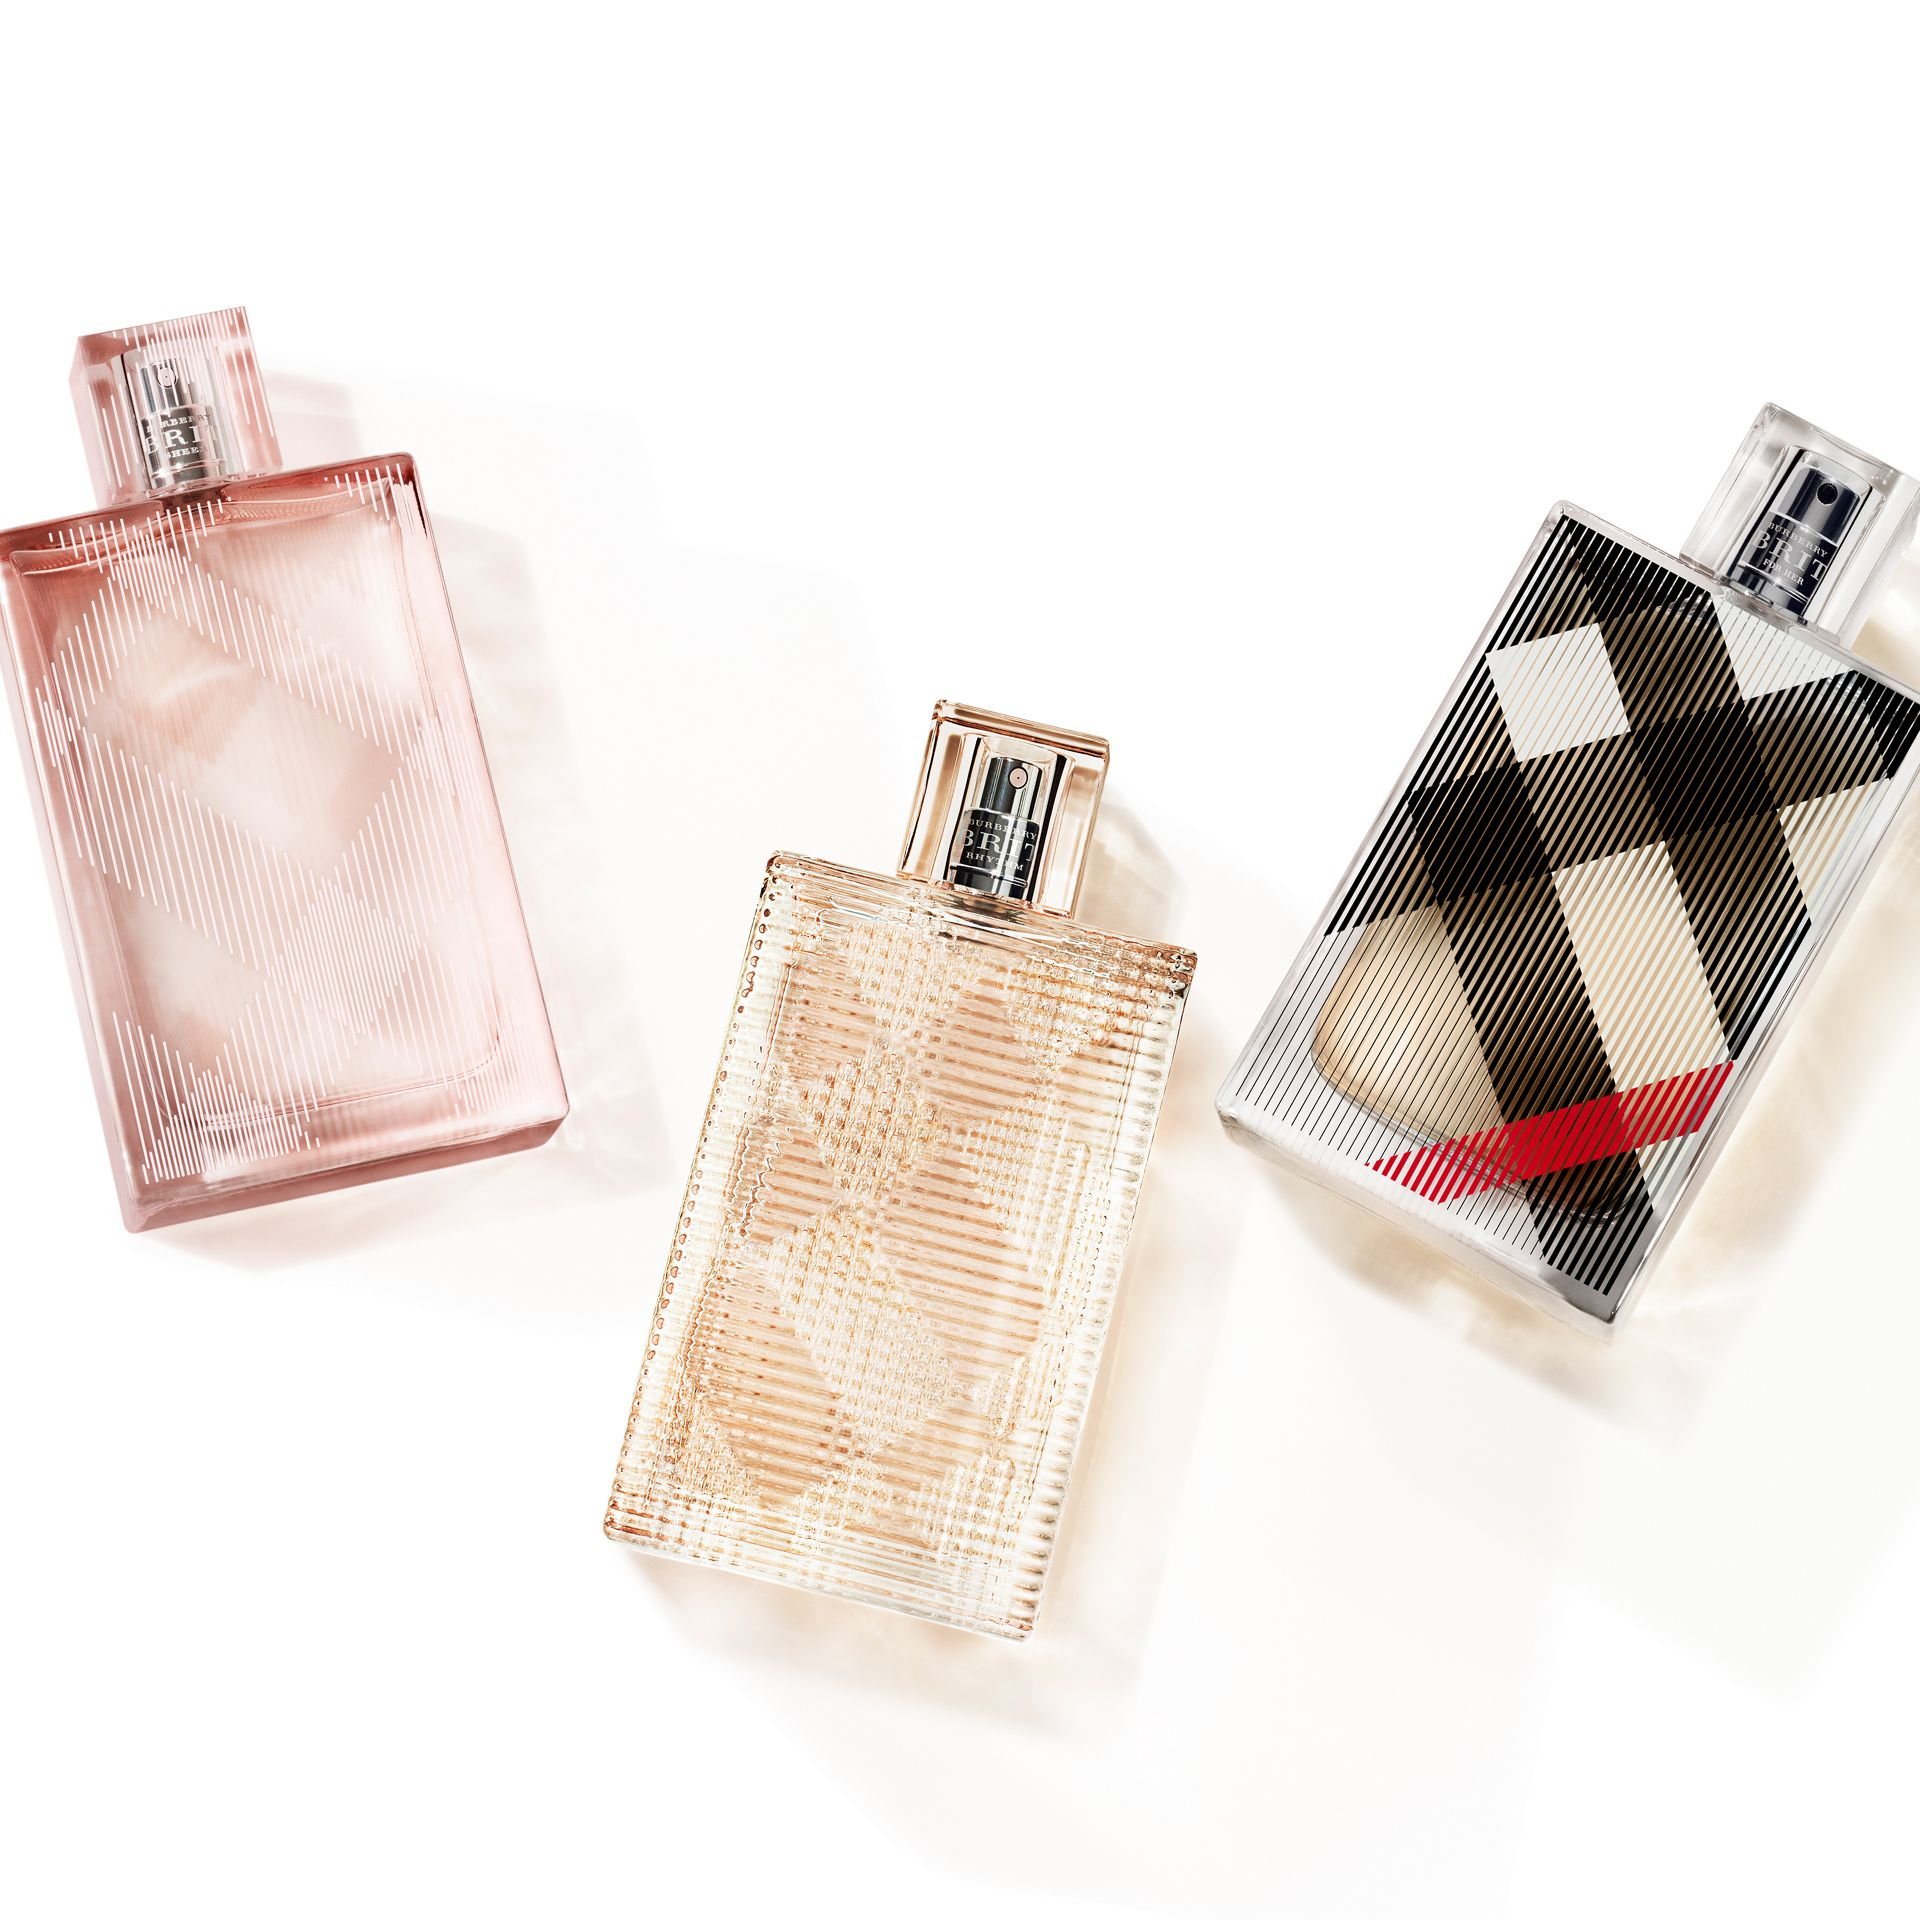 Eau de Toilette Burberry Brit for Her 100 ml - Femme | Burberry Canada - photo de la galerie 2